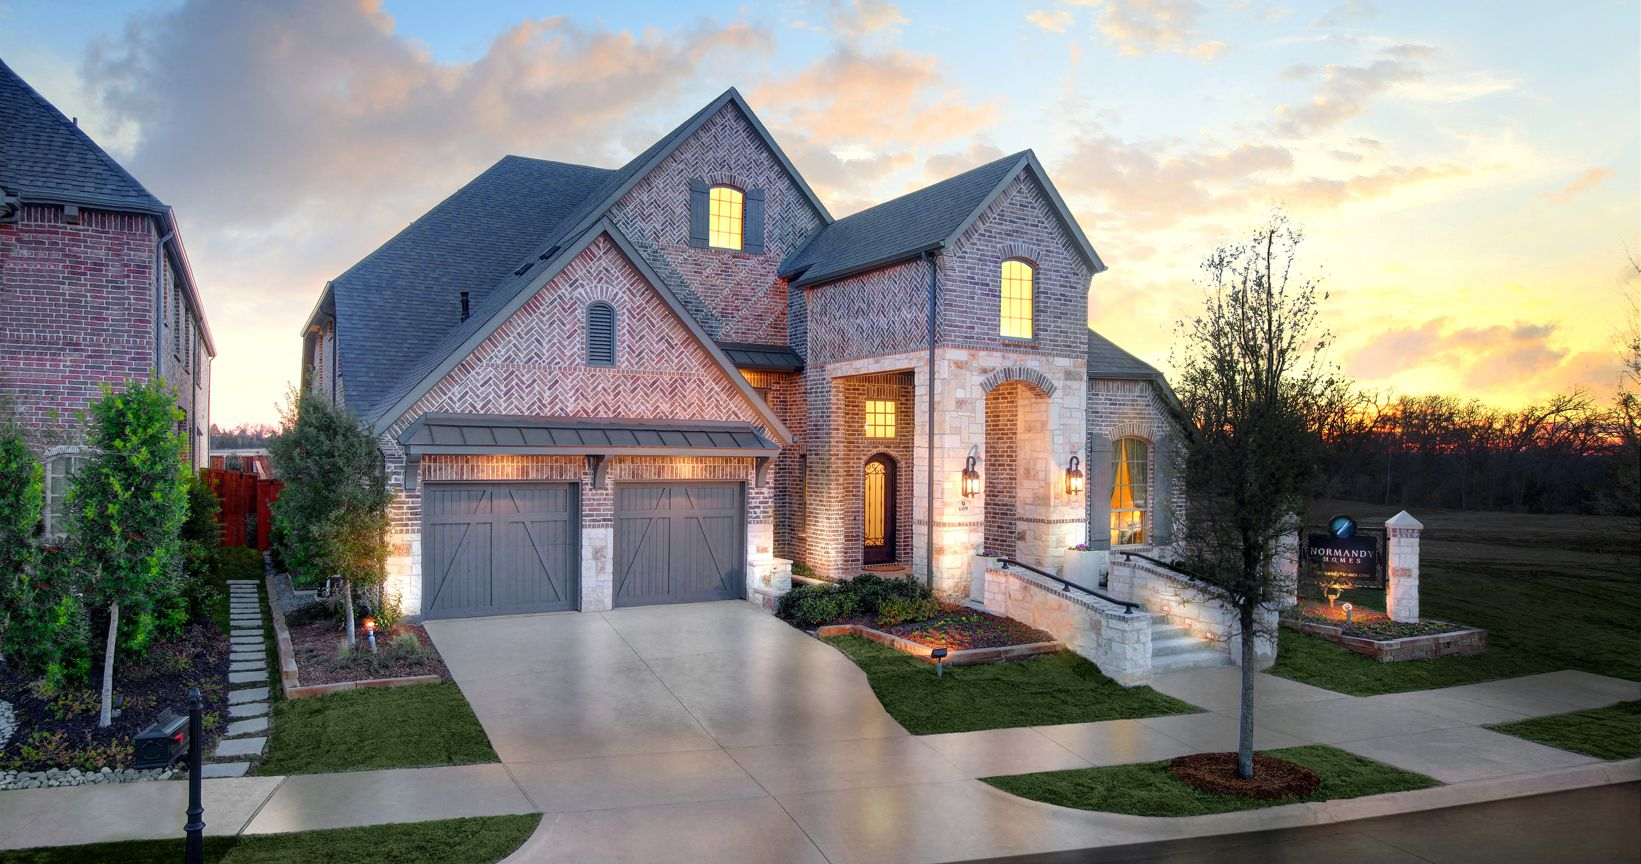 Lakeside Dfw Model Home In Flower Mound Texas New Home